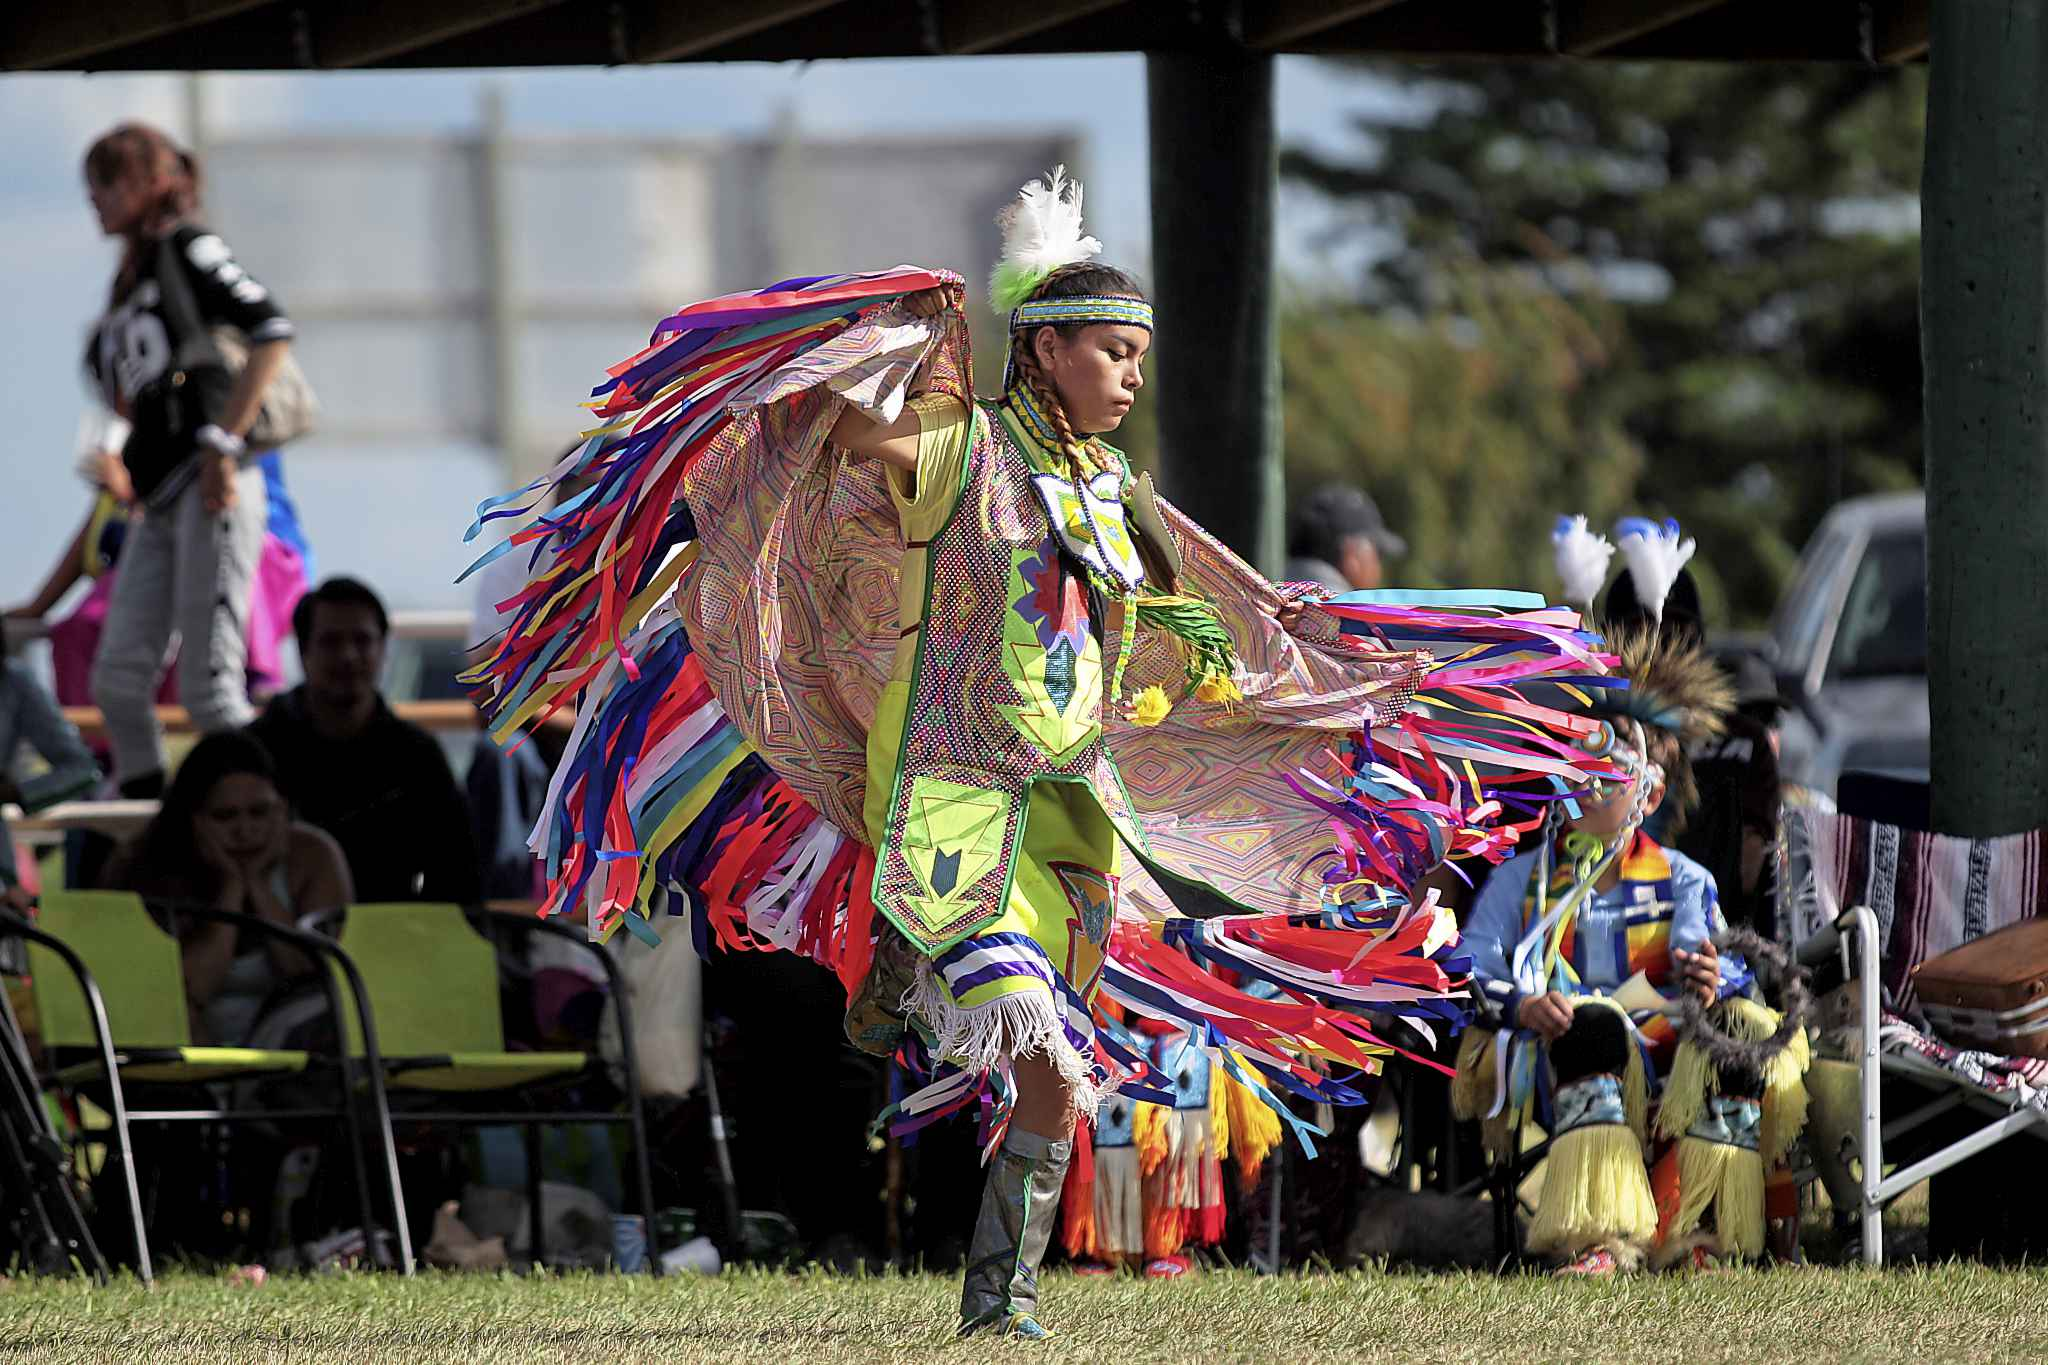 Sashawnee Kay of Kawacatoose First Nation in Saksatchewan dances in the teen girl's fancy dance category during the Rolling River First Nation powwow in 2016.